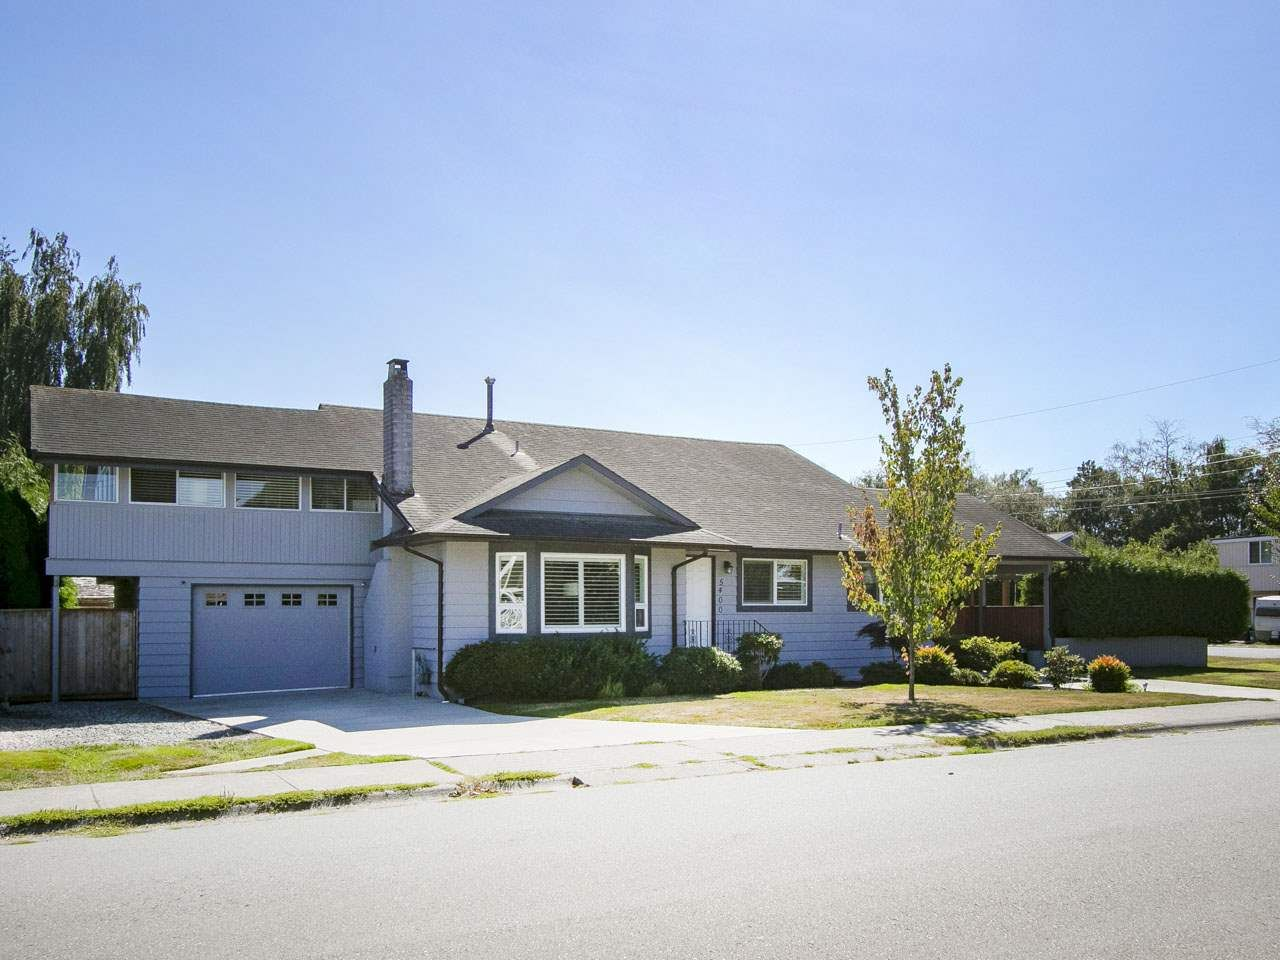 Main Photo: 5400 45 Avenue in Delta: Delta Manor House for sale (Ladner)  : MLS®# R2200512